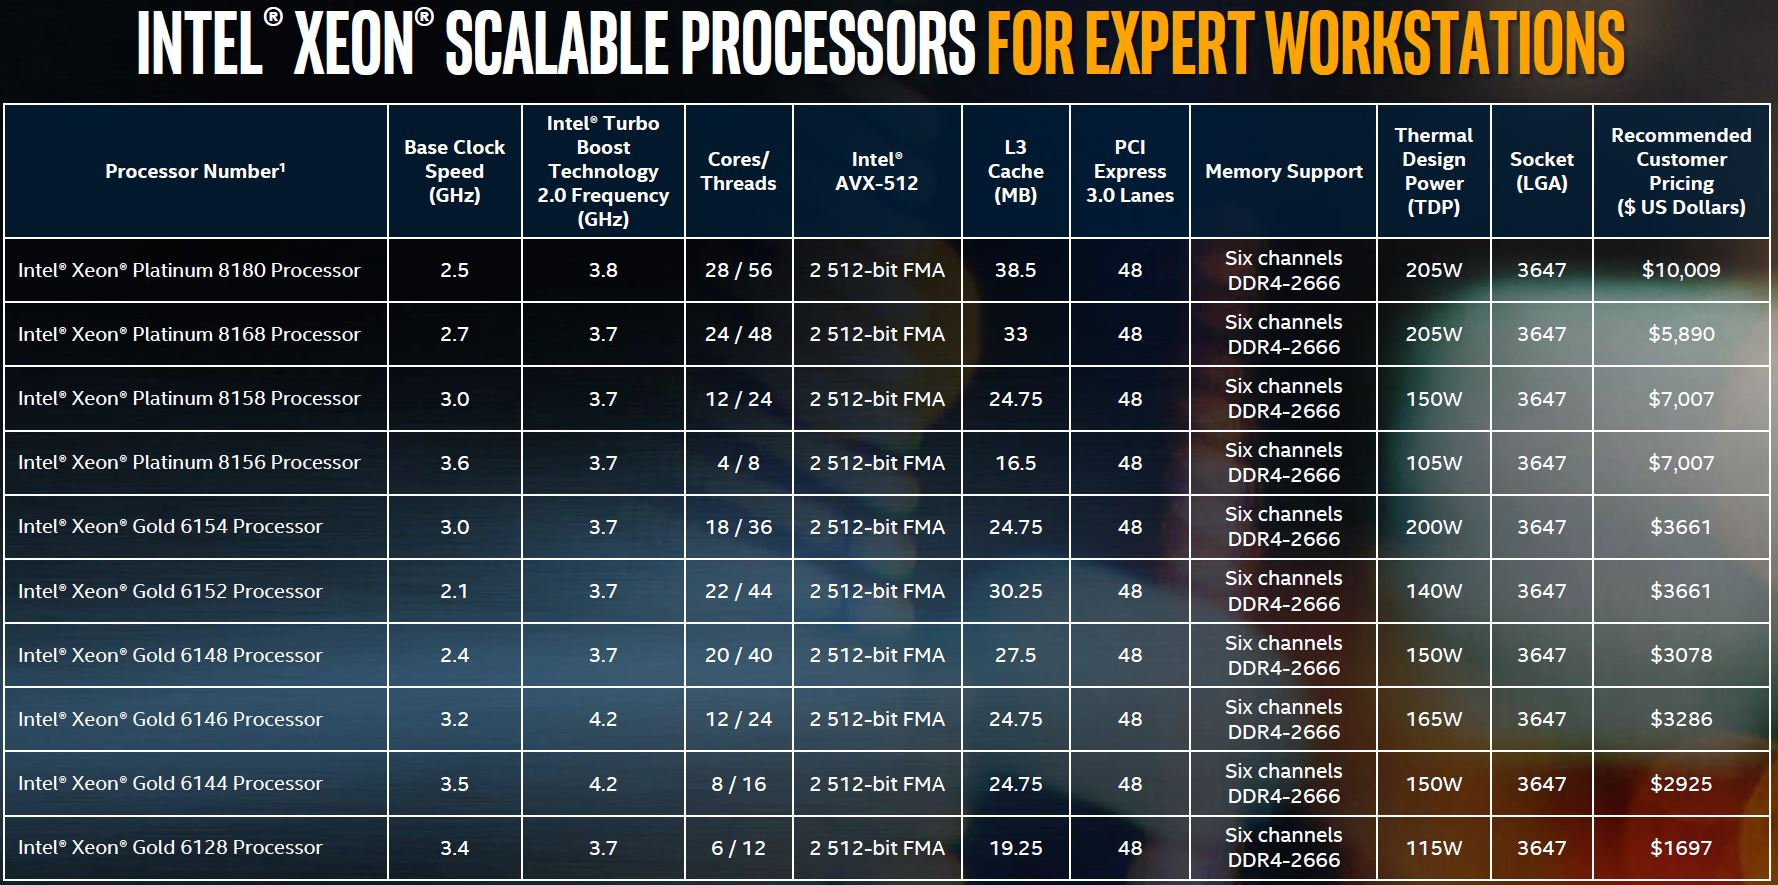 Intel Xeon Scalable For Workstations